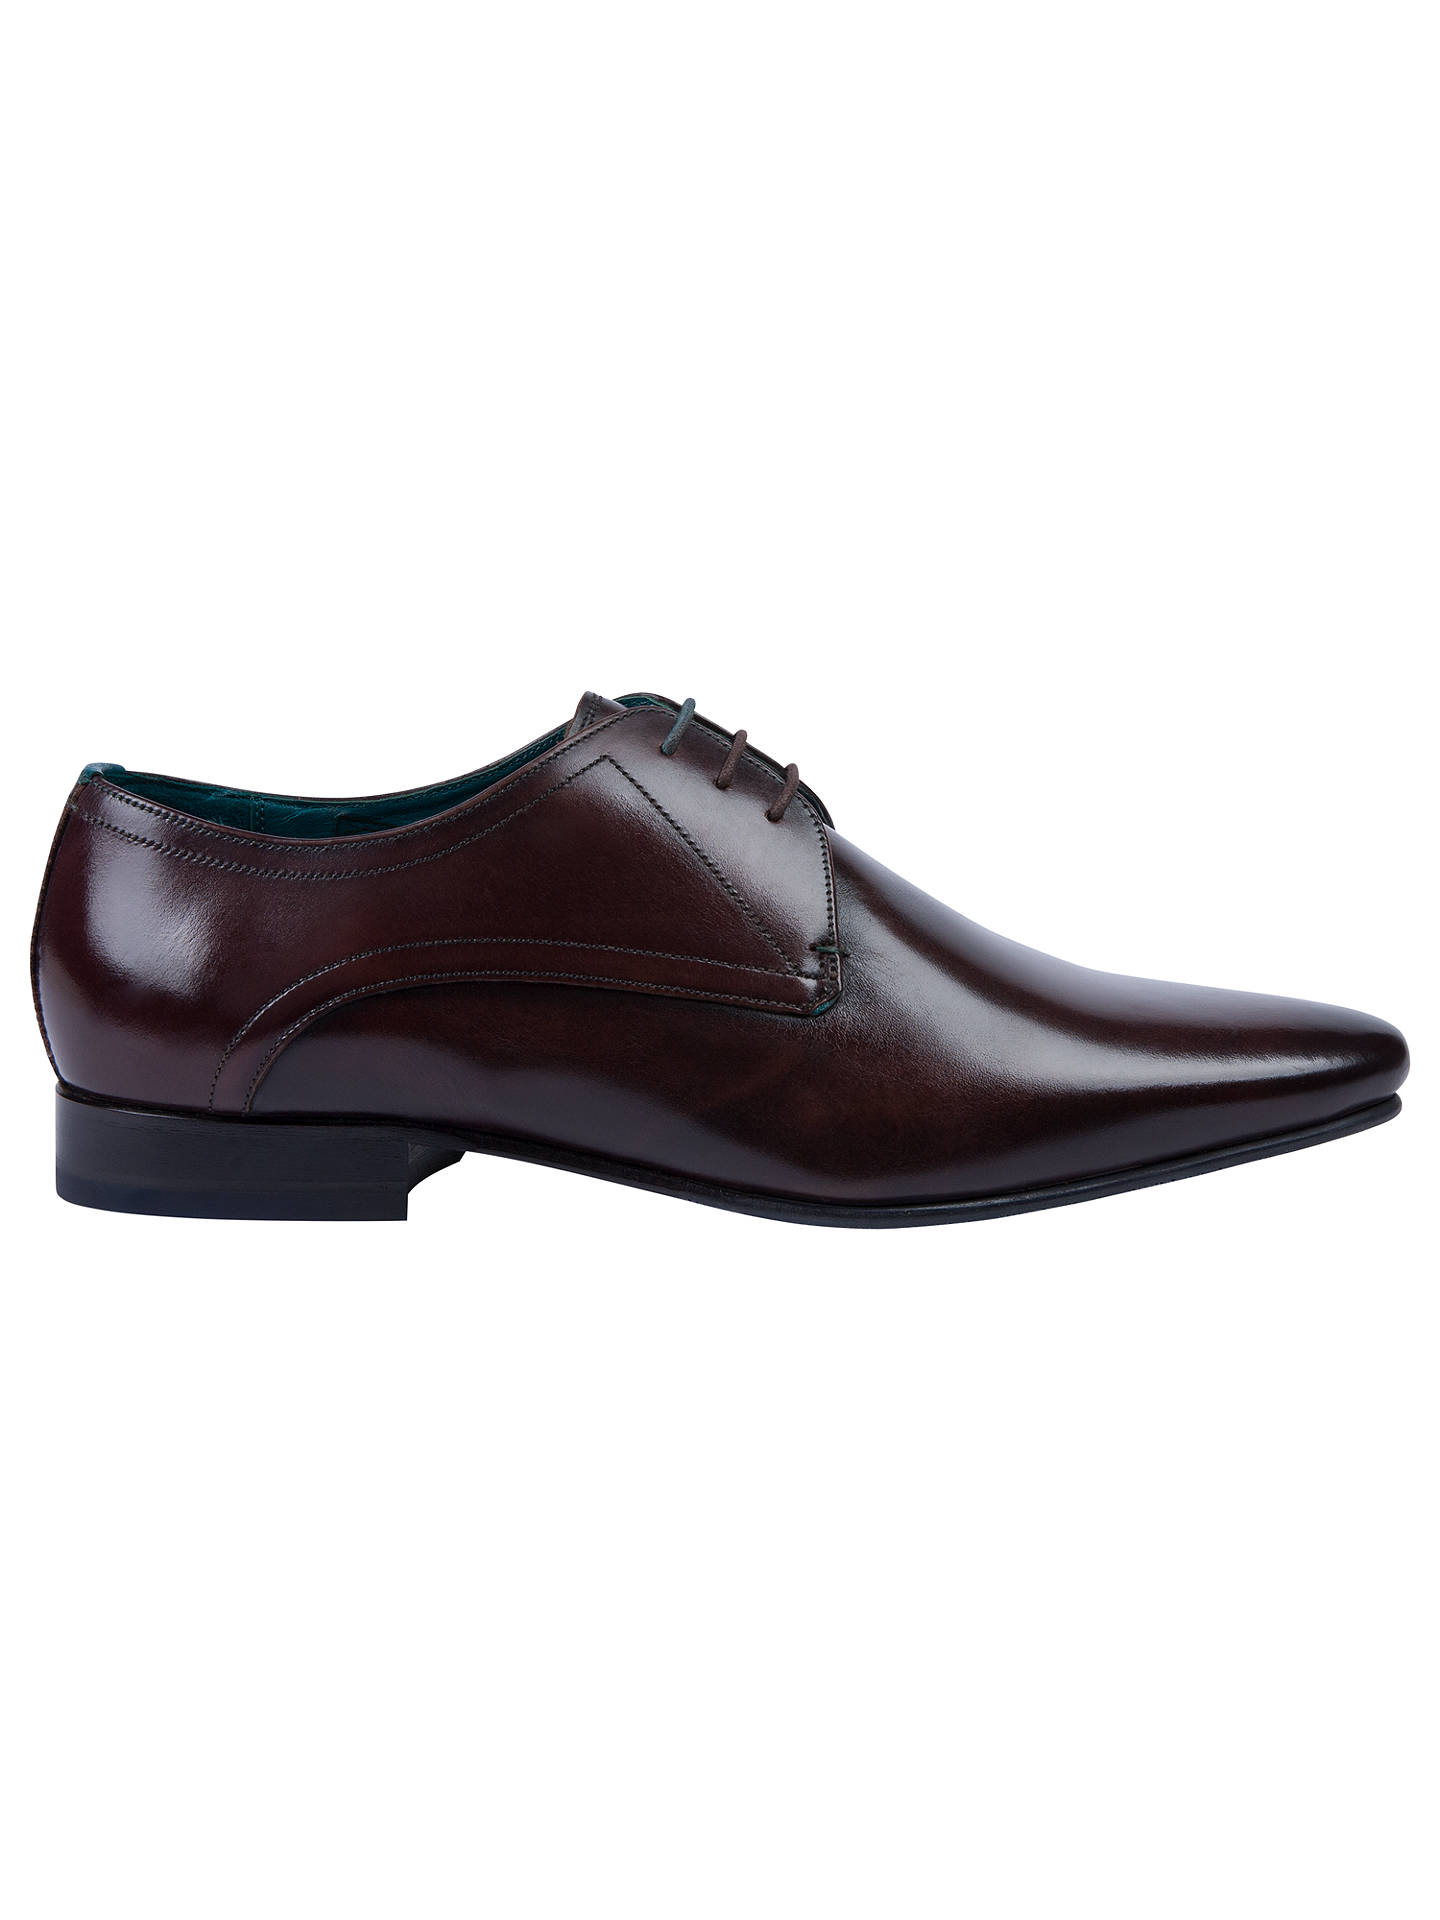 990b406d3 Ted Baker Bhartli Pointed Derby Shoes at John Lewis   Partners